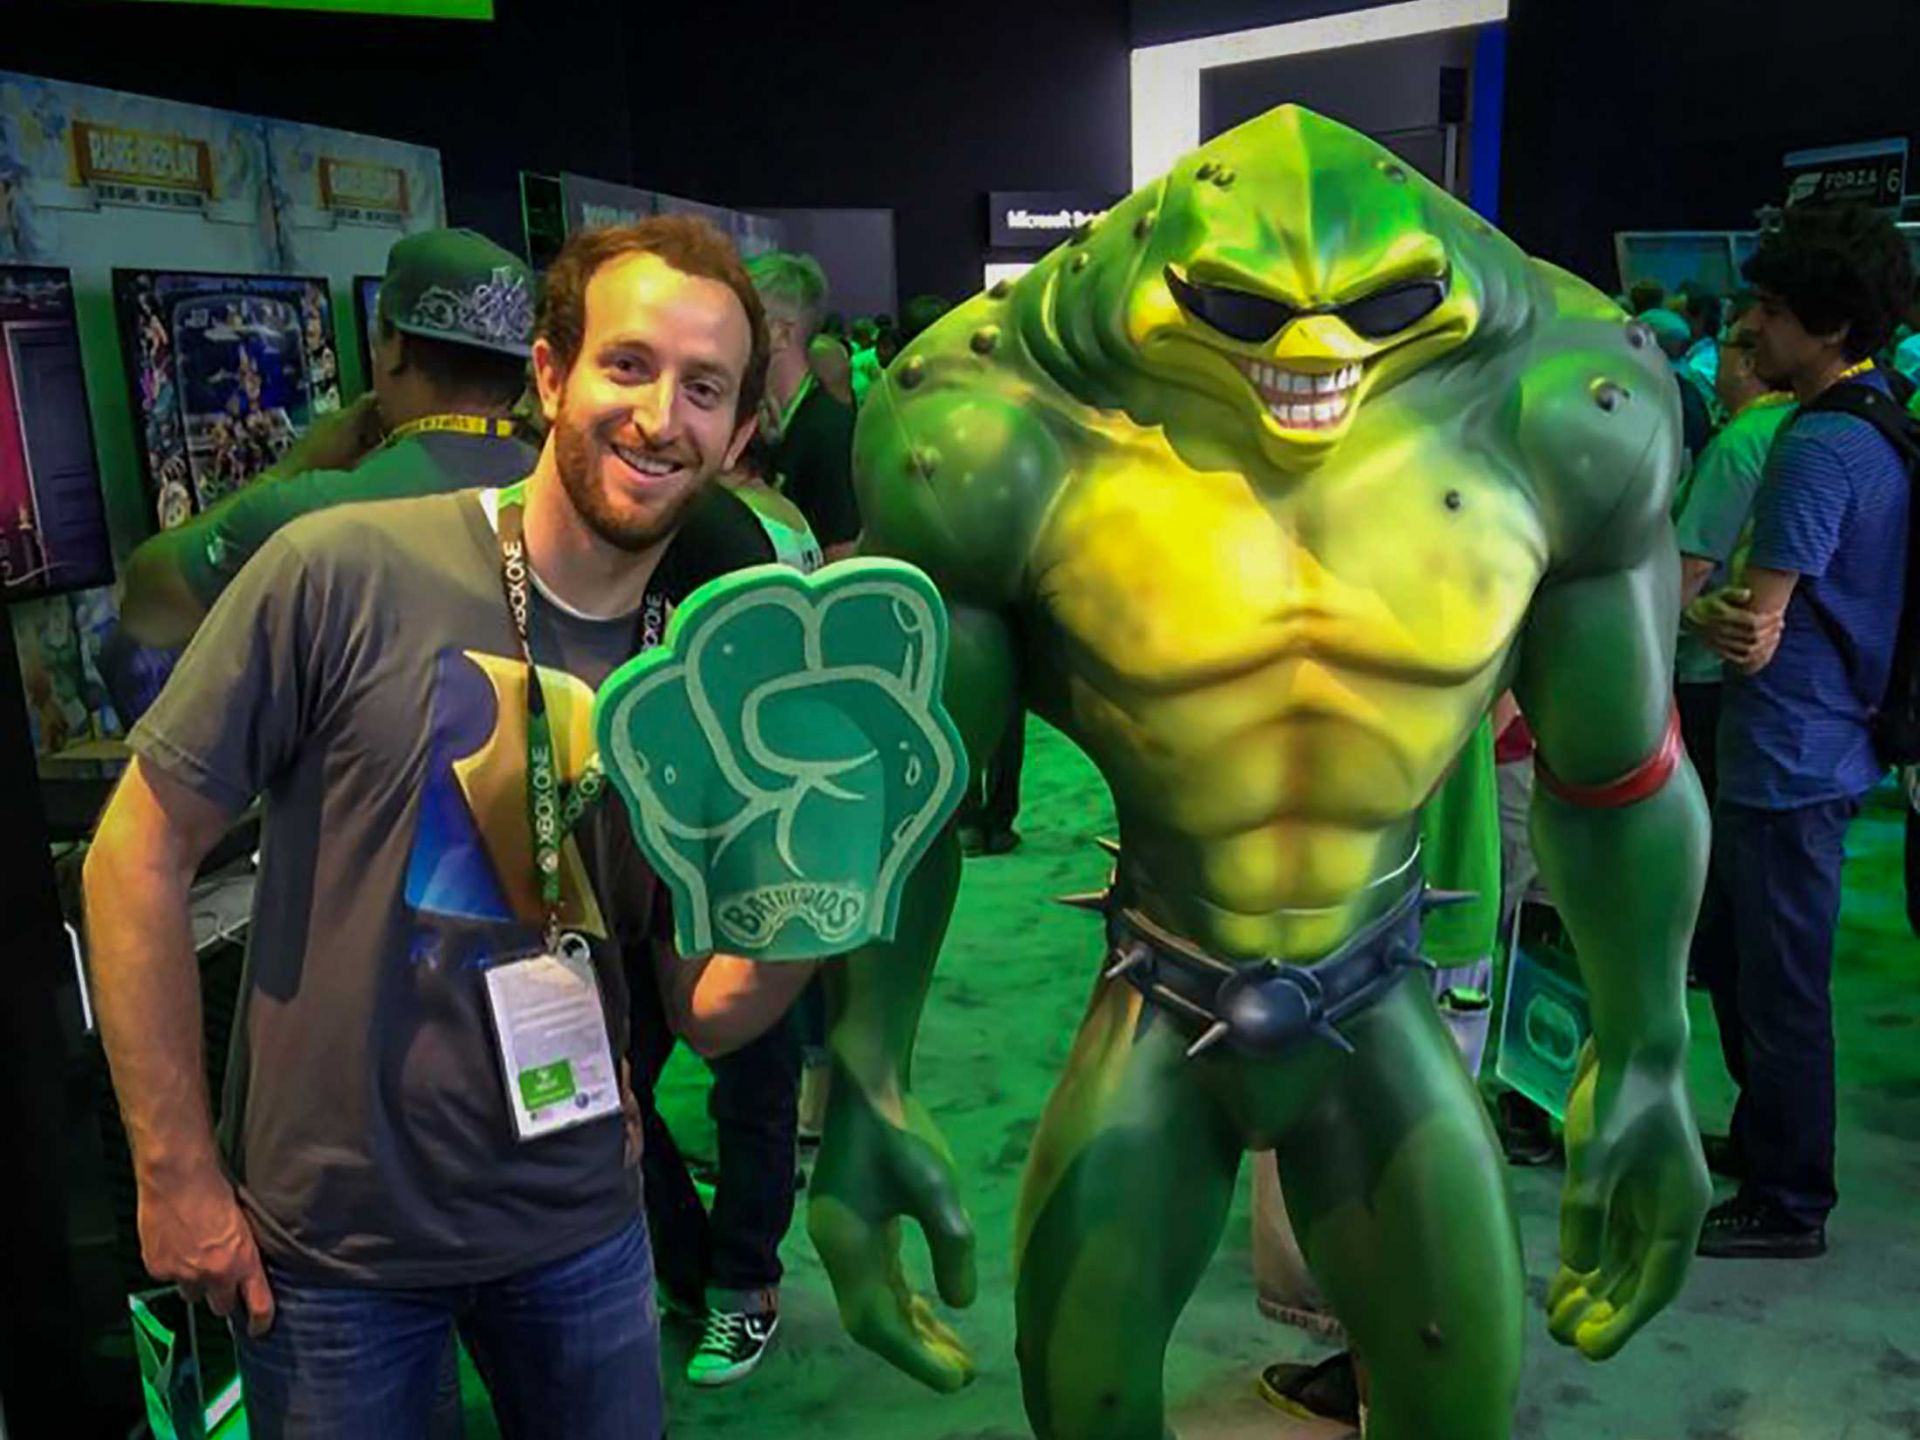 Man having his photo taken with battletoad giant sculpture.